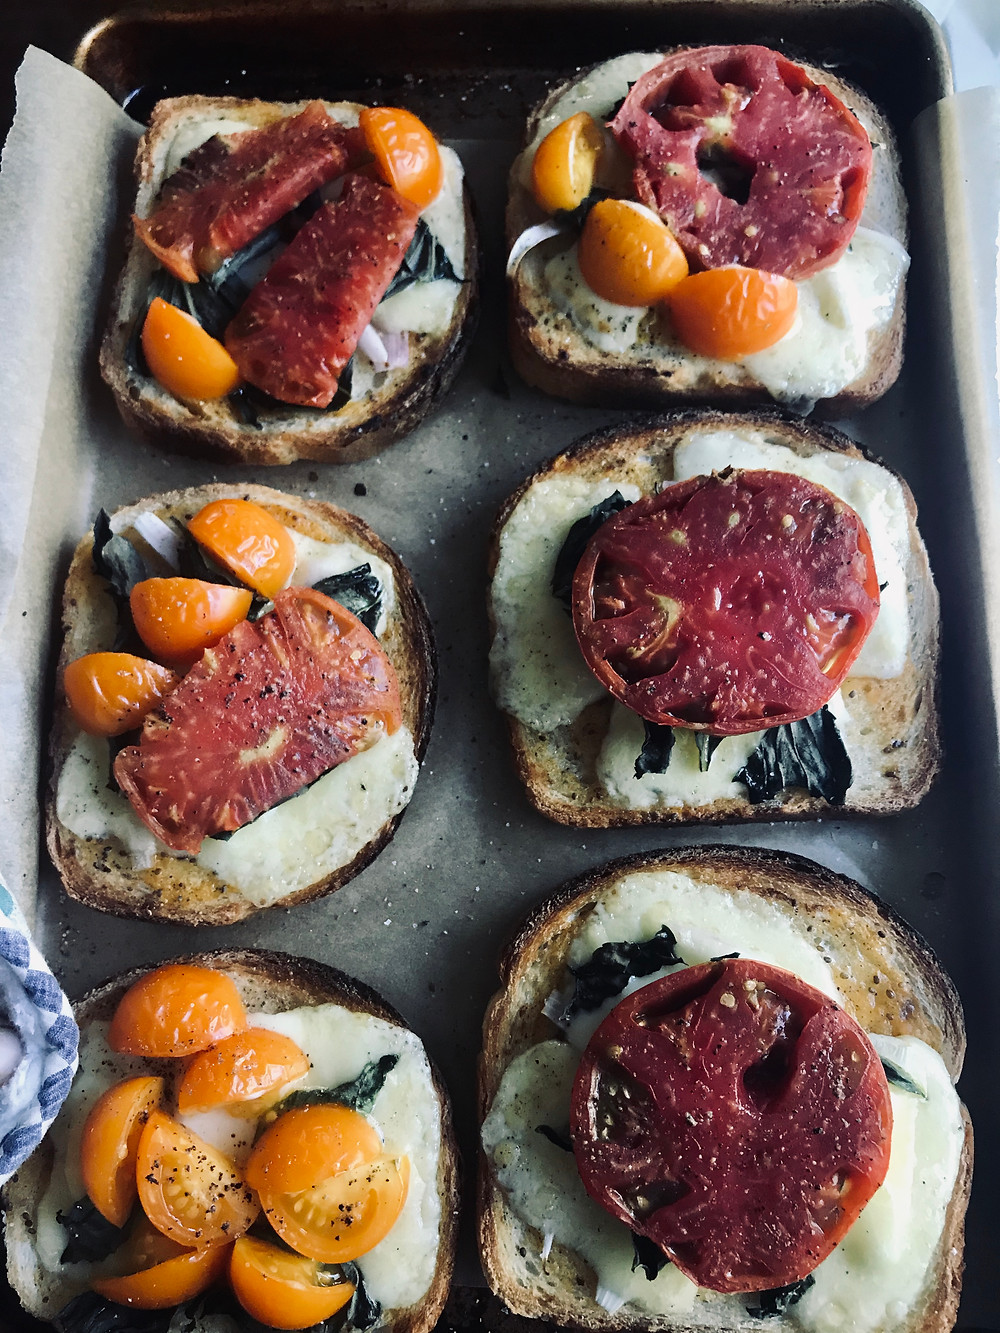 Grilled cheese with tomatoes recipe | Nourish Farm Turlock